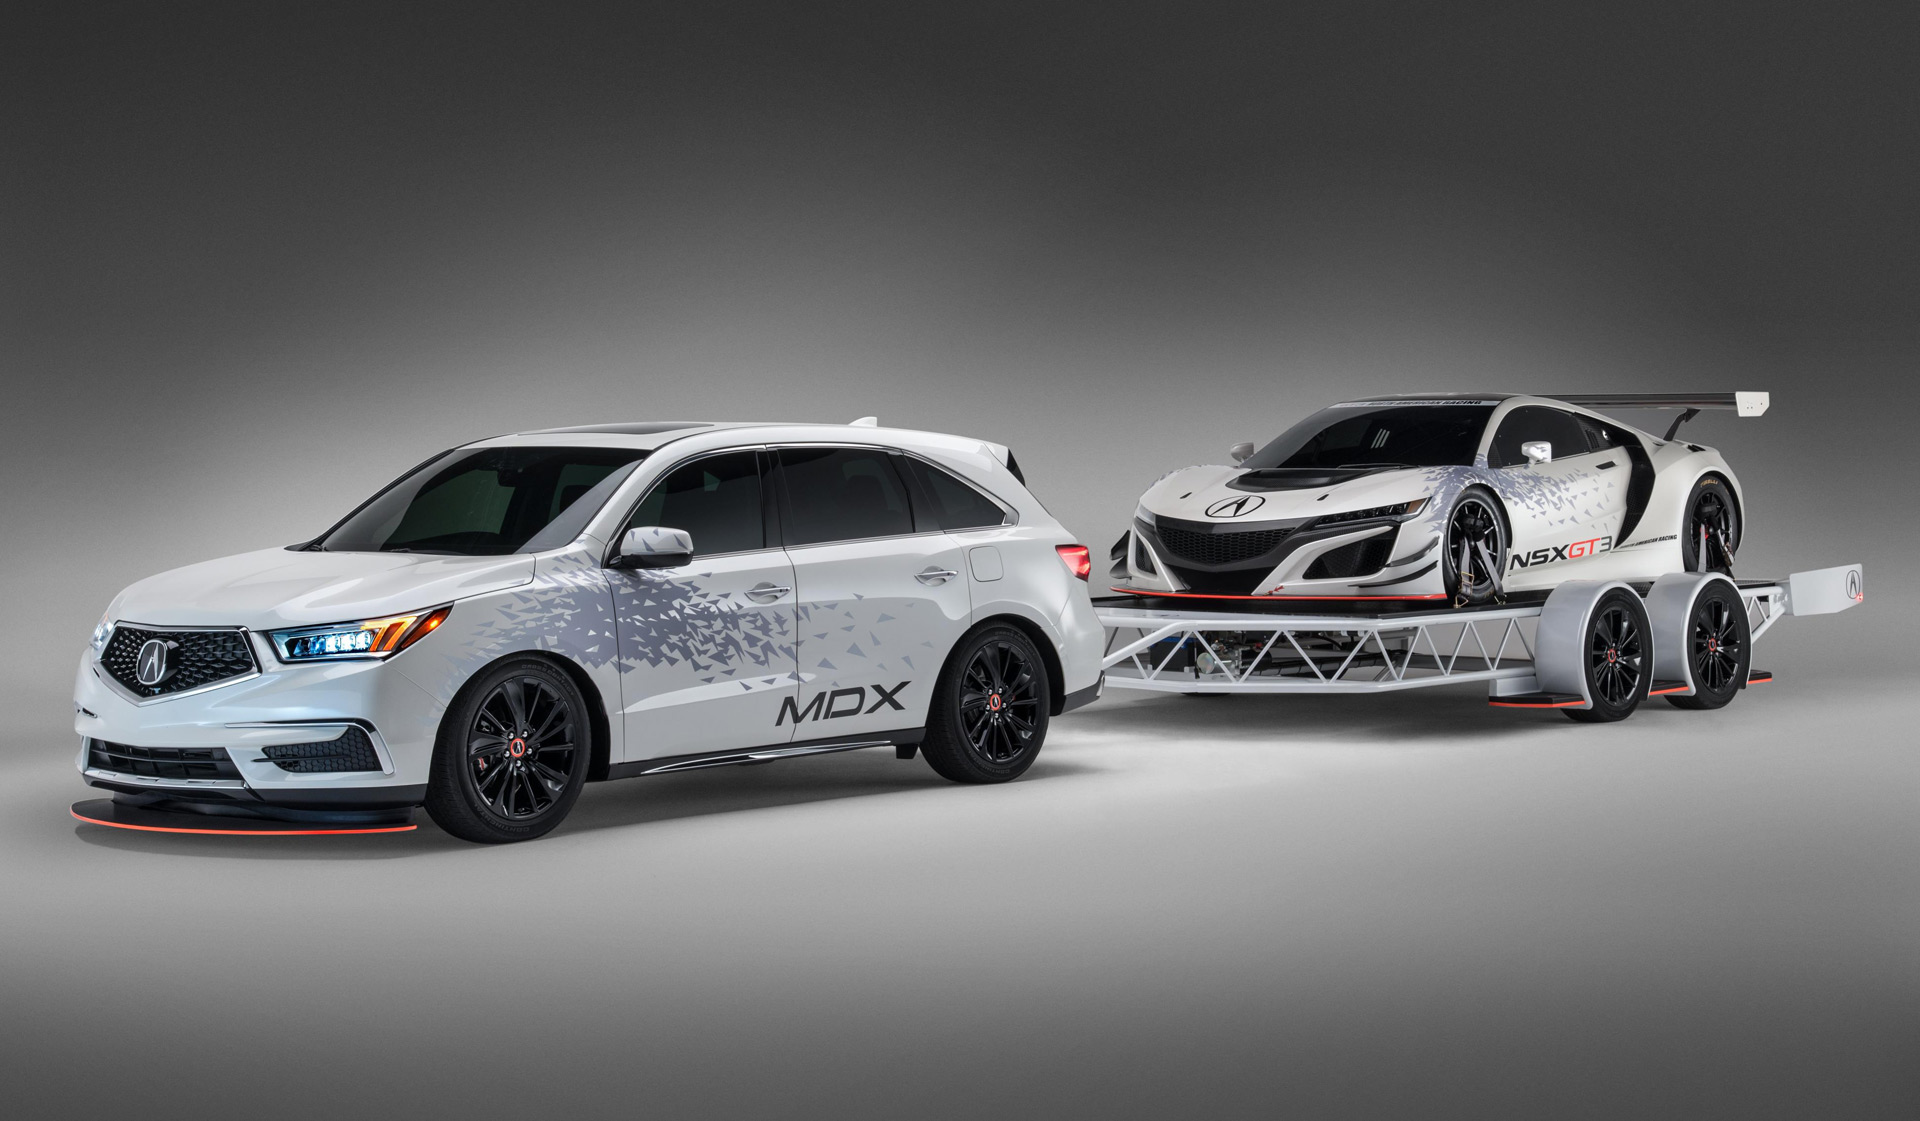 acura motor mdx and cars rating mazda three trend reviews front